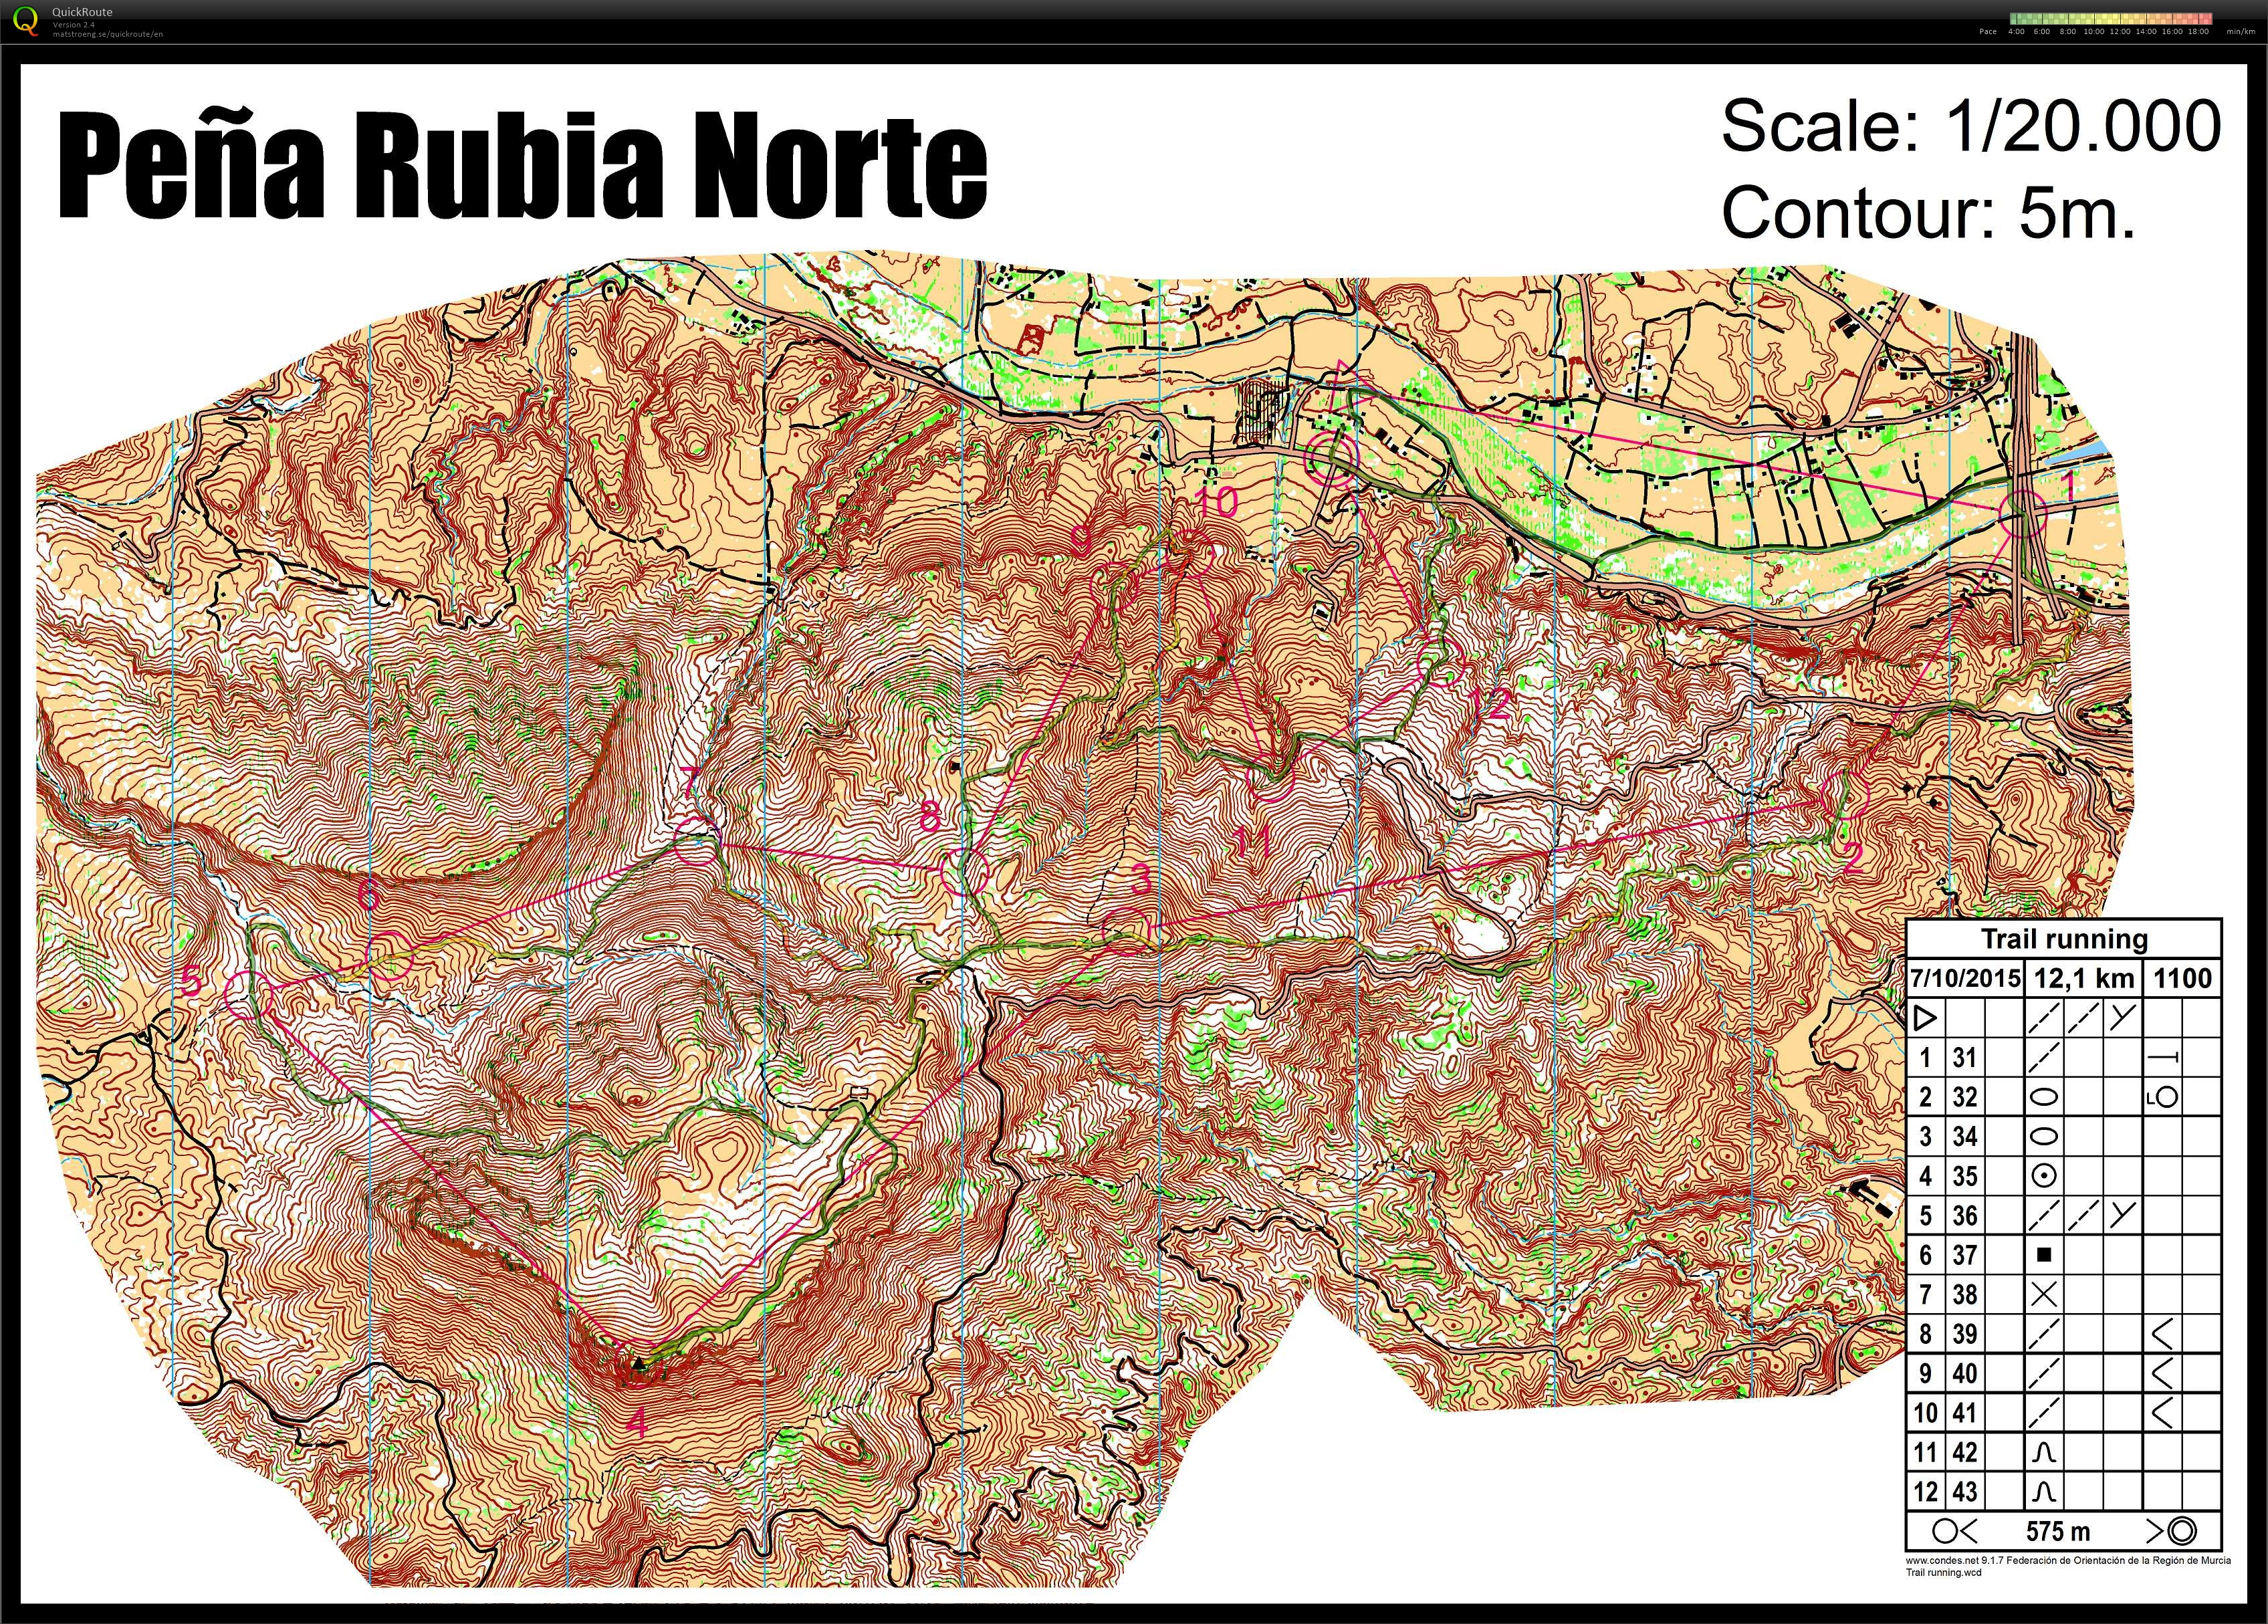 Trail running (2015-10-07)